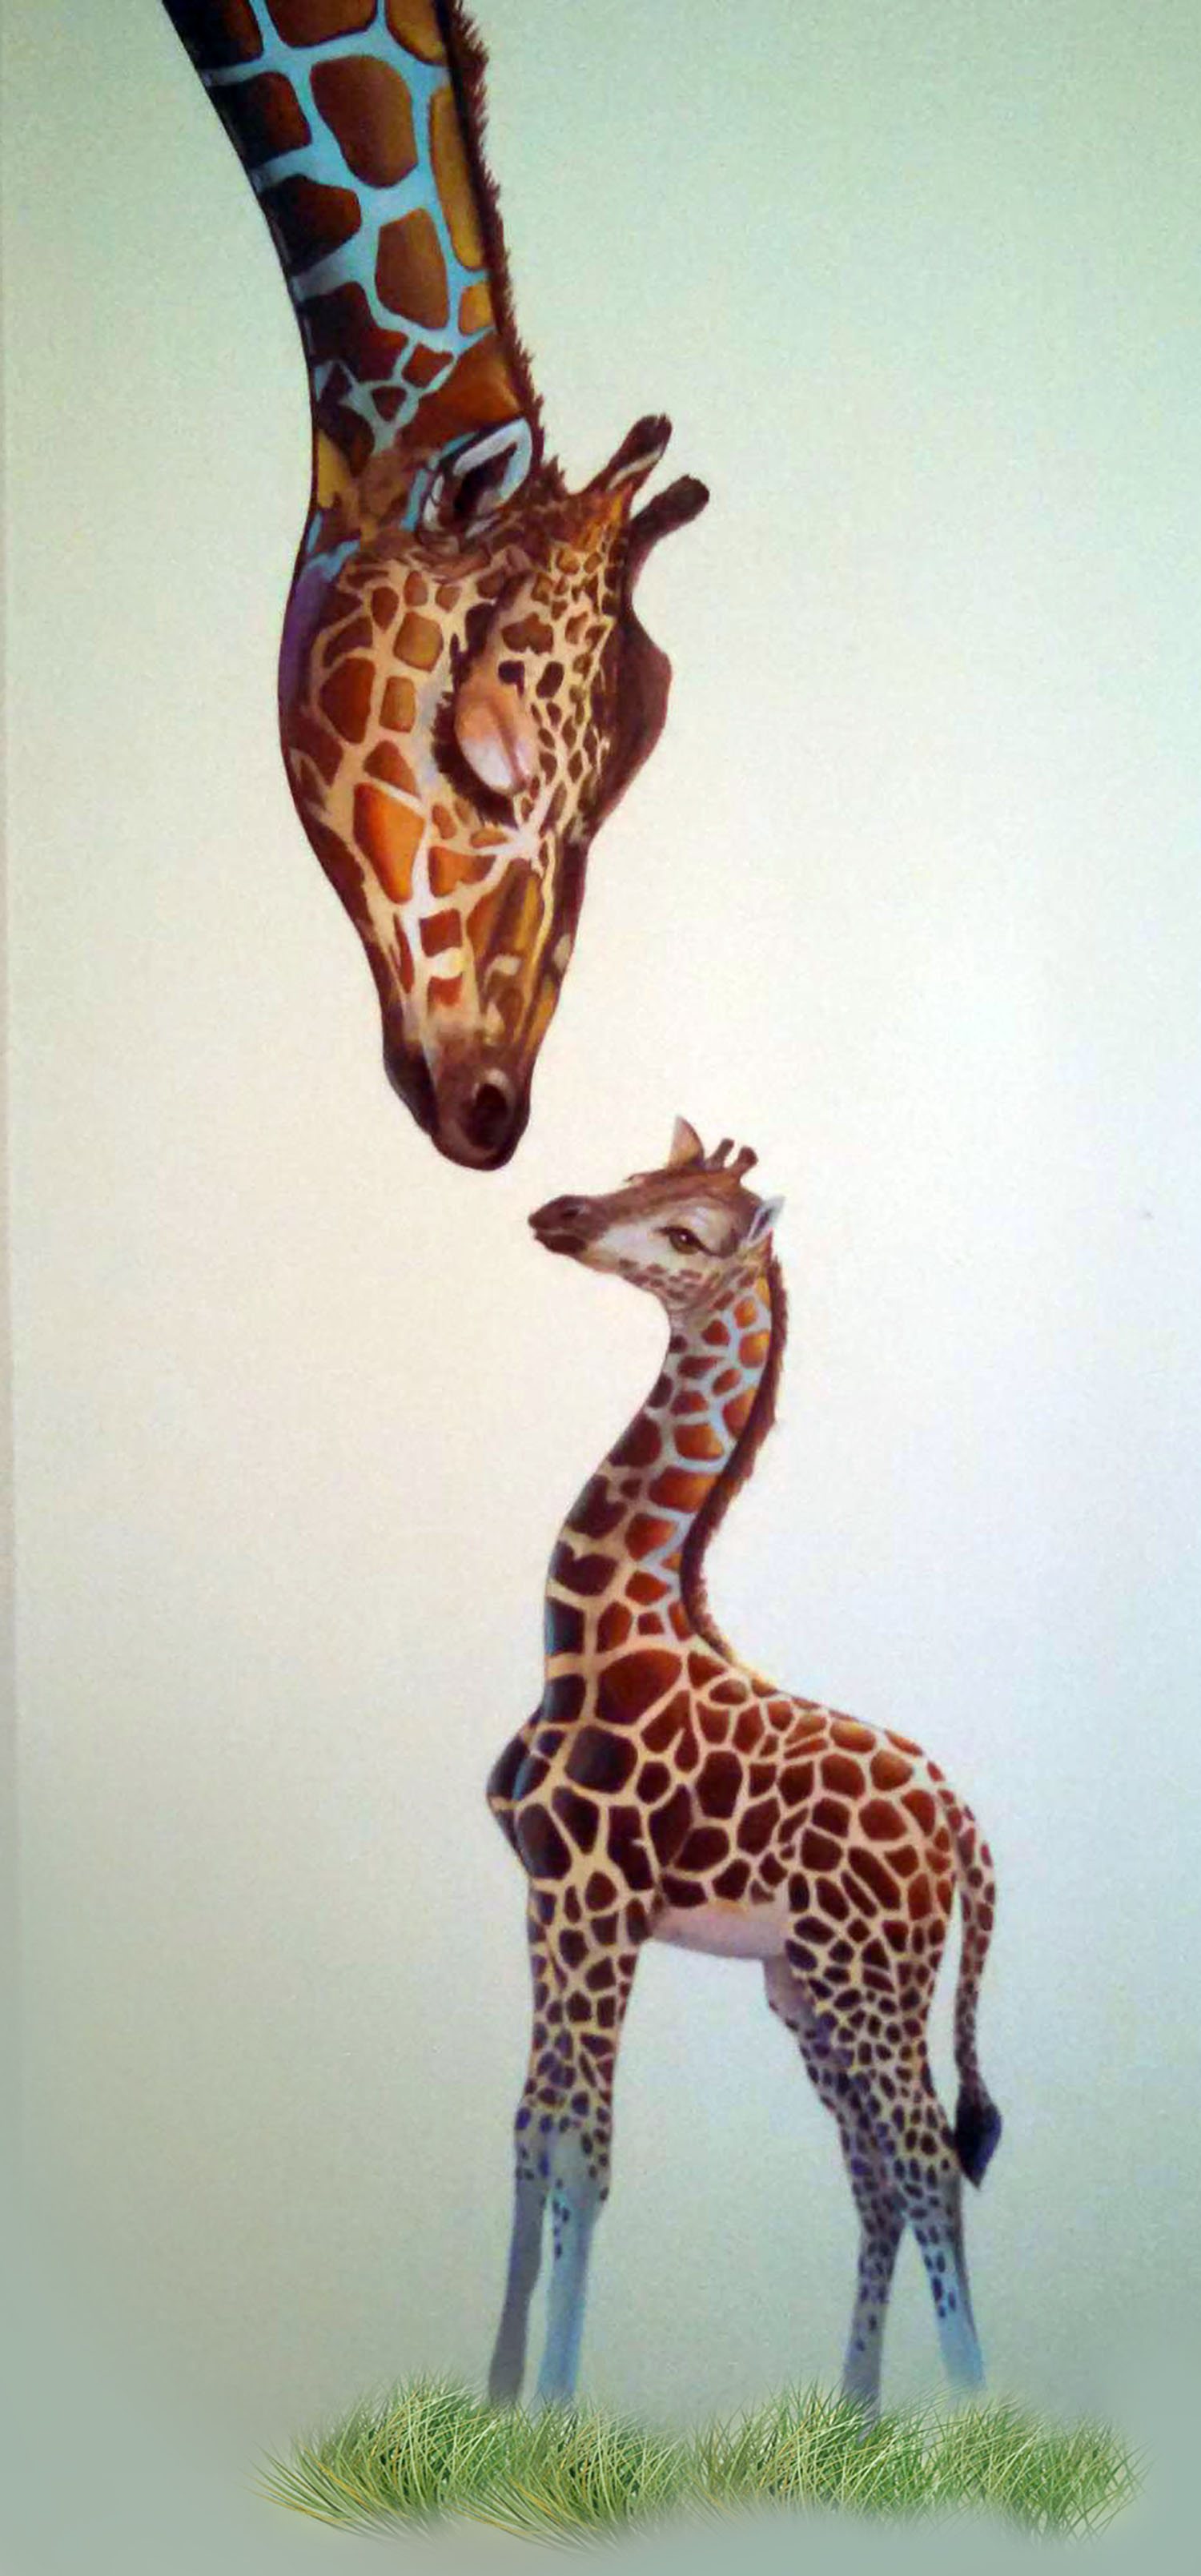 giraffe final paint small copy.jpg